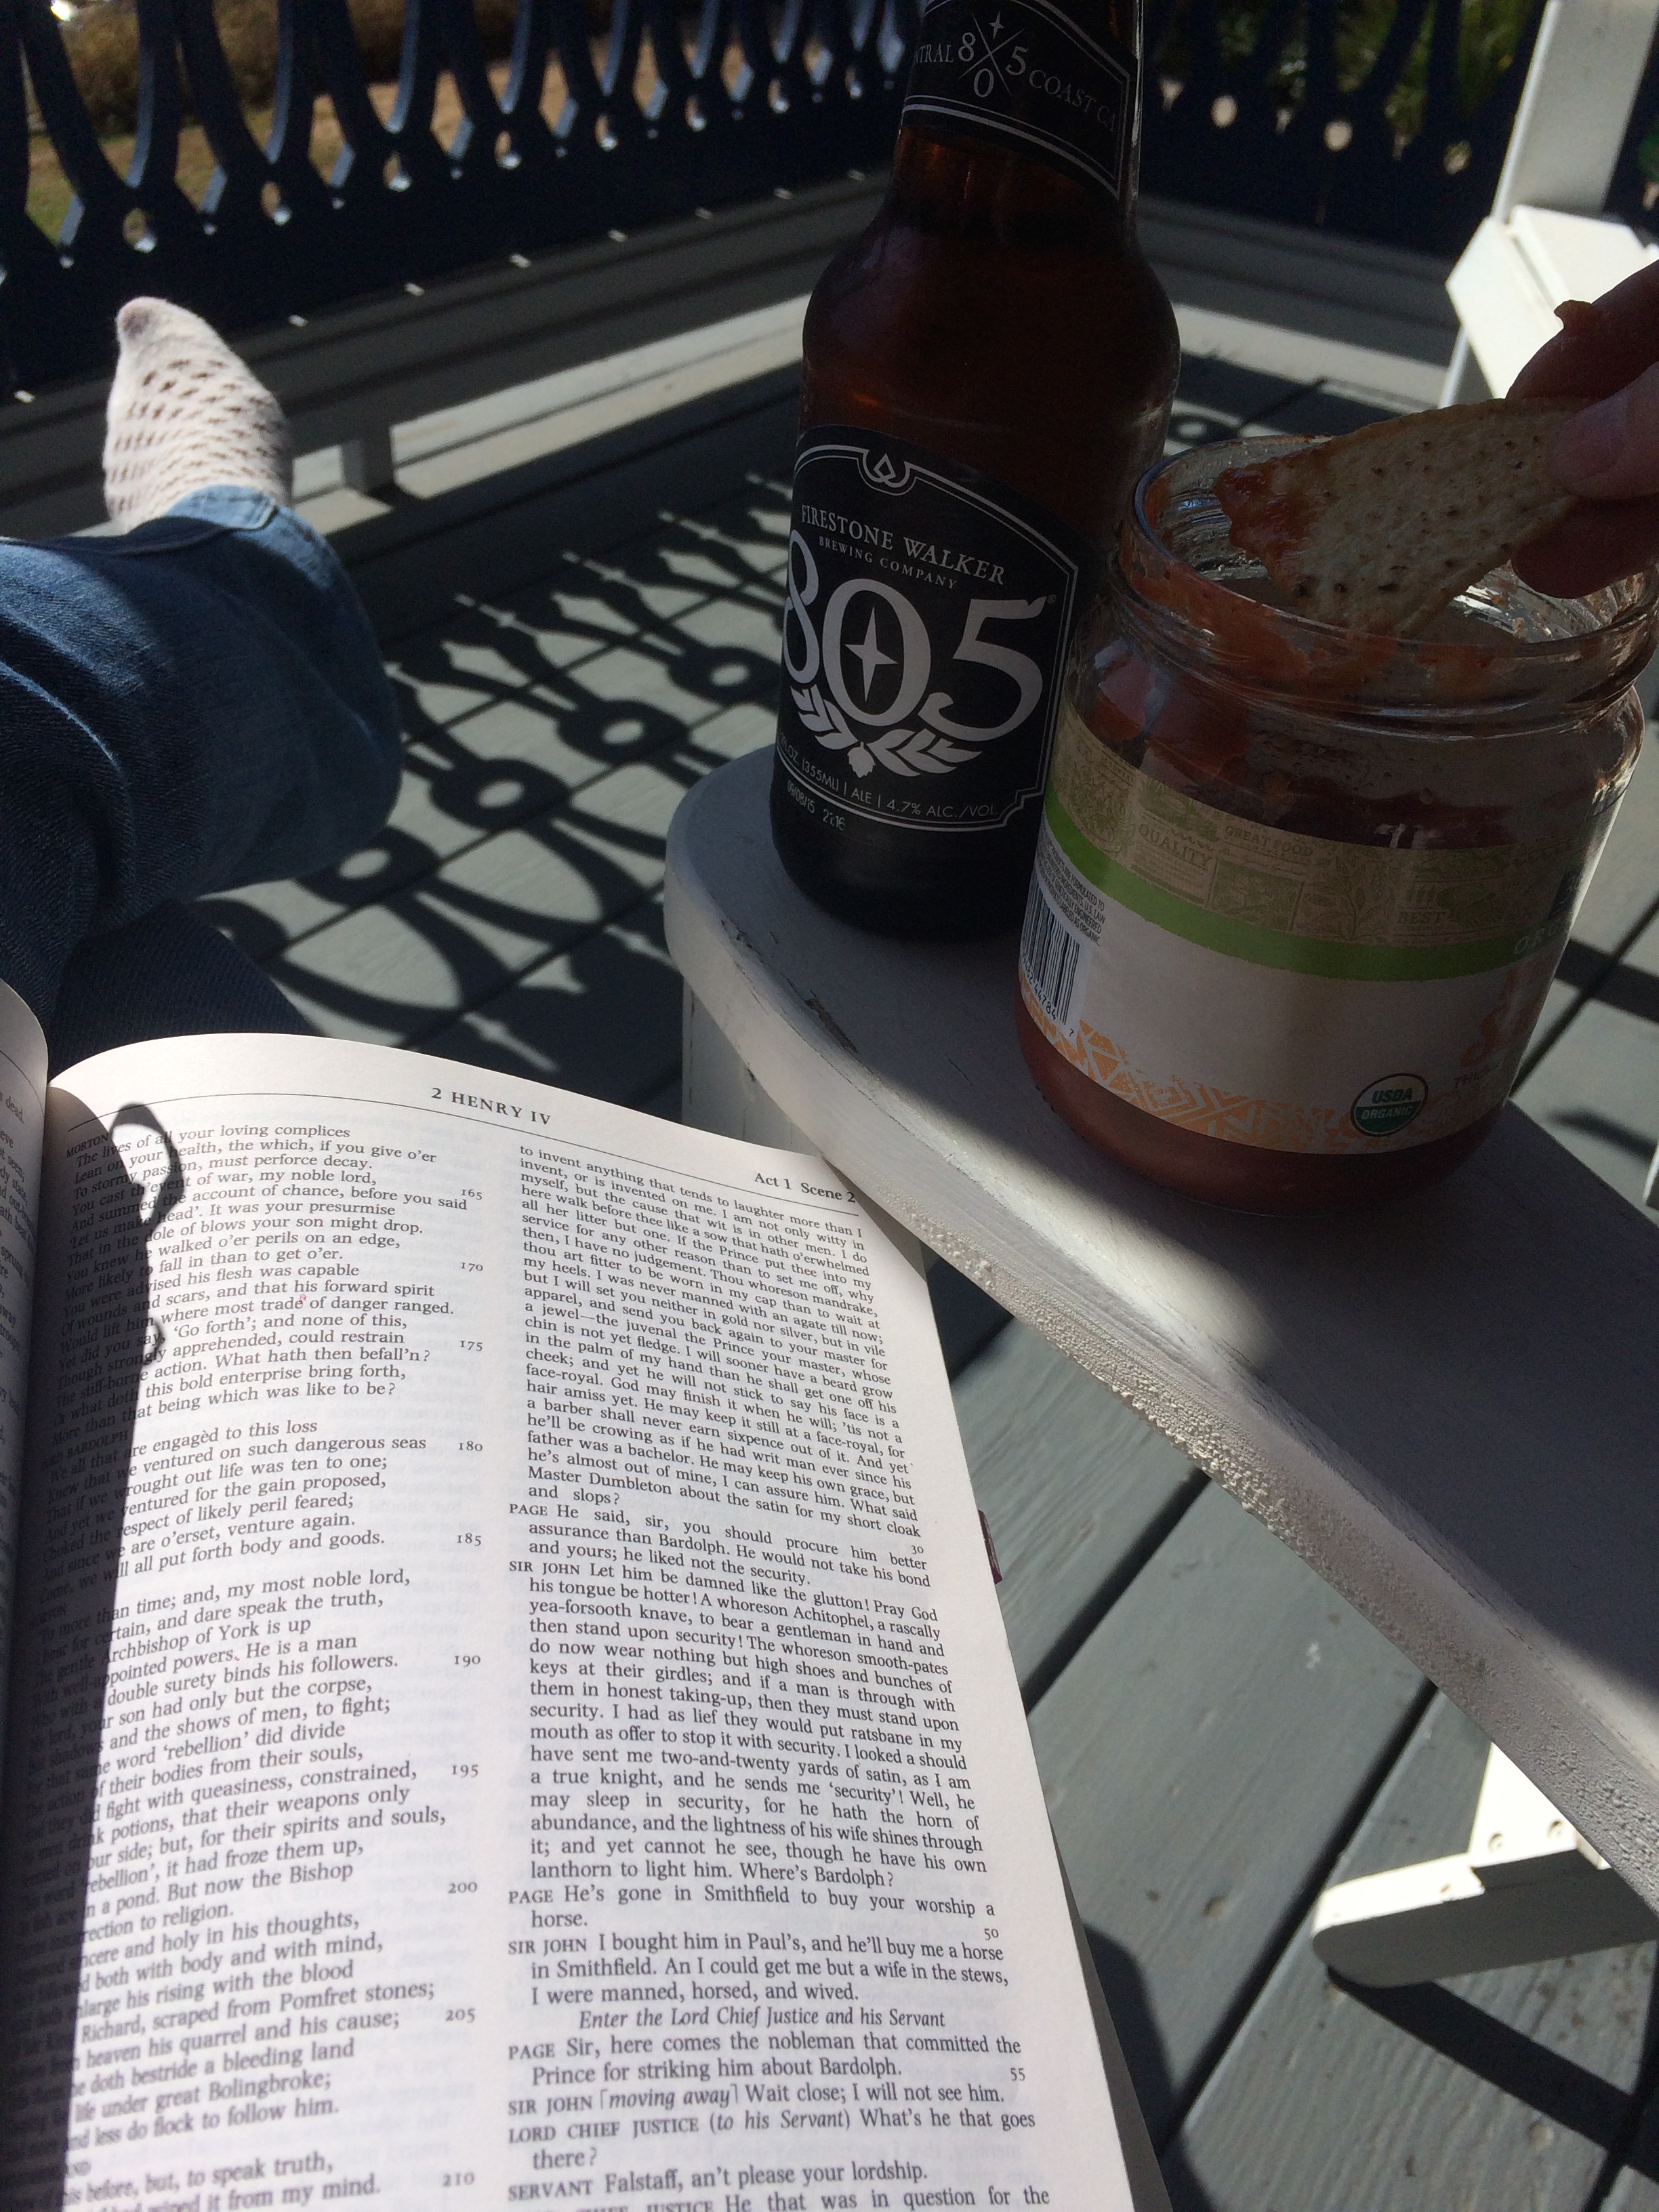 Occasionally, I get to enjoy reading from my  Complete Works  on my sunny front porch while drinking a beer. That combination is one of my all-time favorite activities.